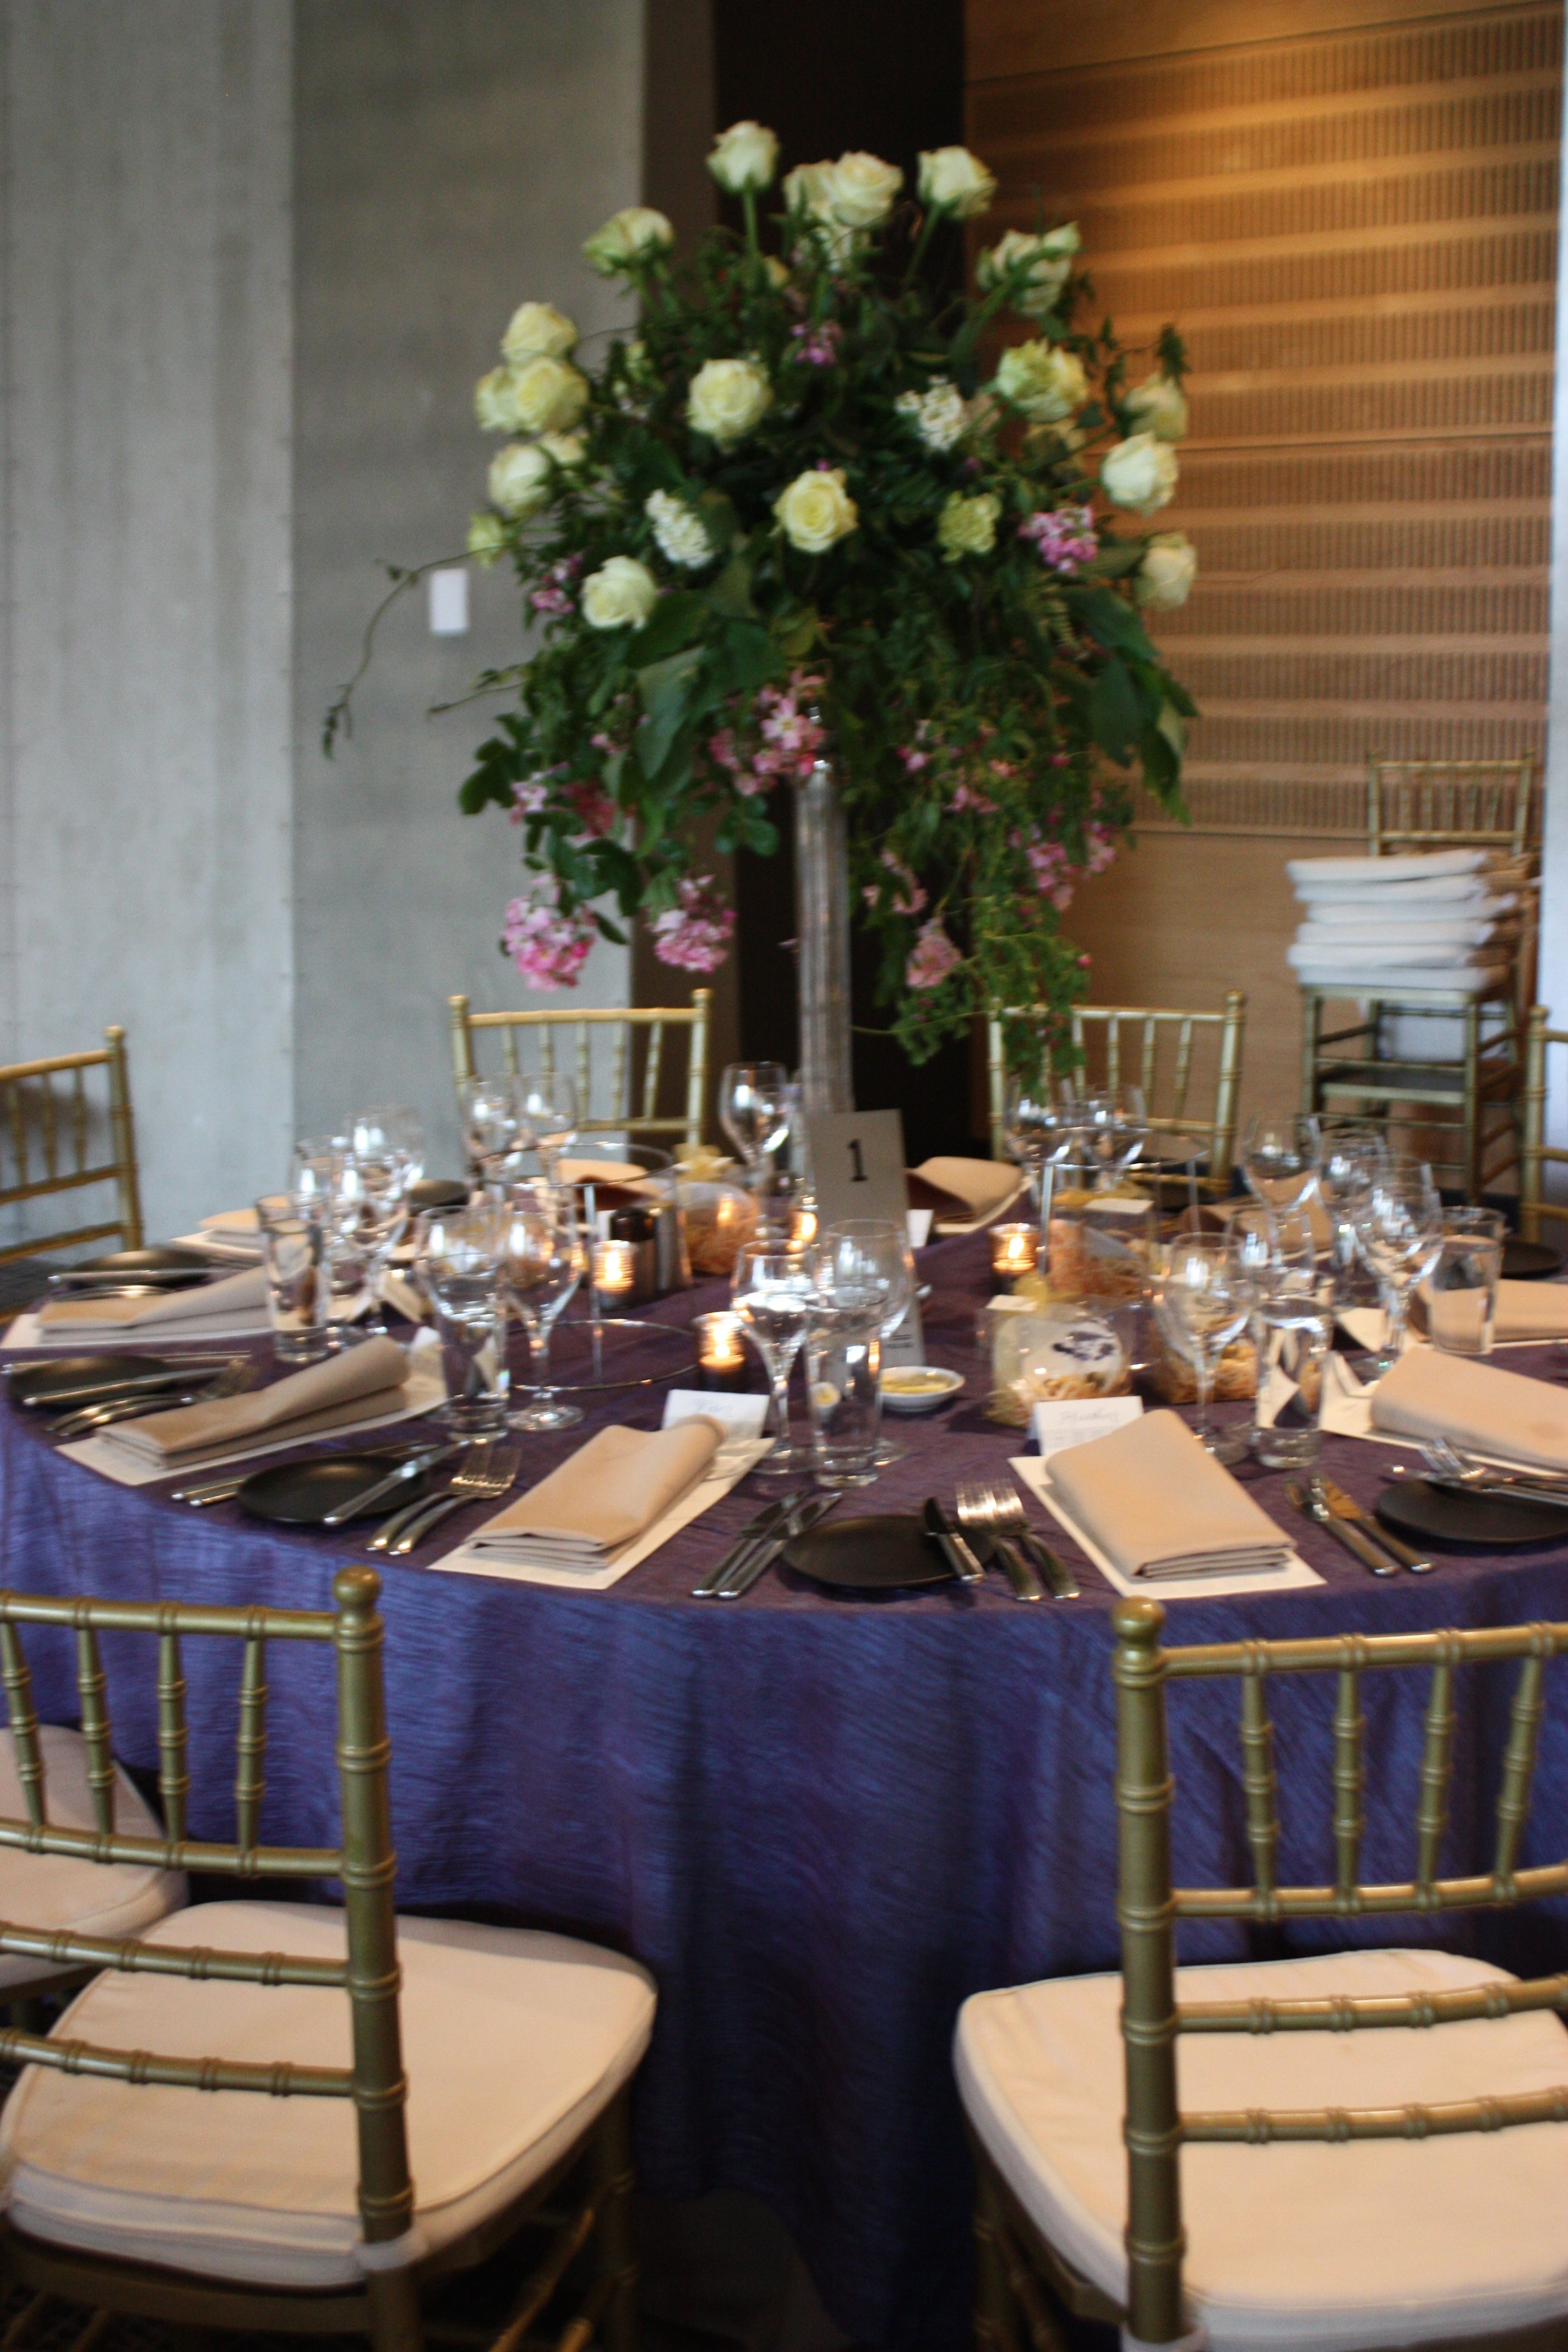 A stunning wedding at Zinc Federation Square using navy linen and amazing stand out floral centerpieces   #wedding #decoration #floral #styling #melbourne #floralstyling #floral #flowers #flowerstyling #floraldesign #floraldecor #decoritevents #floralcenterpieces #flowerdecorations #melbourne #melbourneevents #floralcenterpiecesmelbourne #floralstyling #floral #flowers #flowerstyling #floraldesign #floraldecor #decoritevents www.decorit.com.au (32)